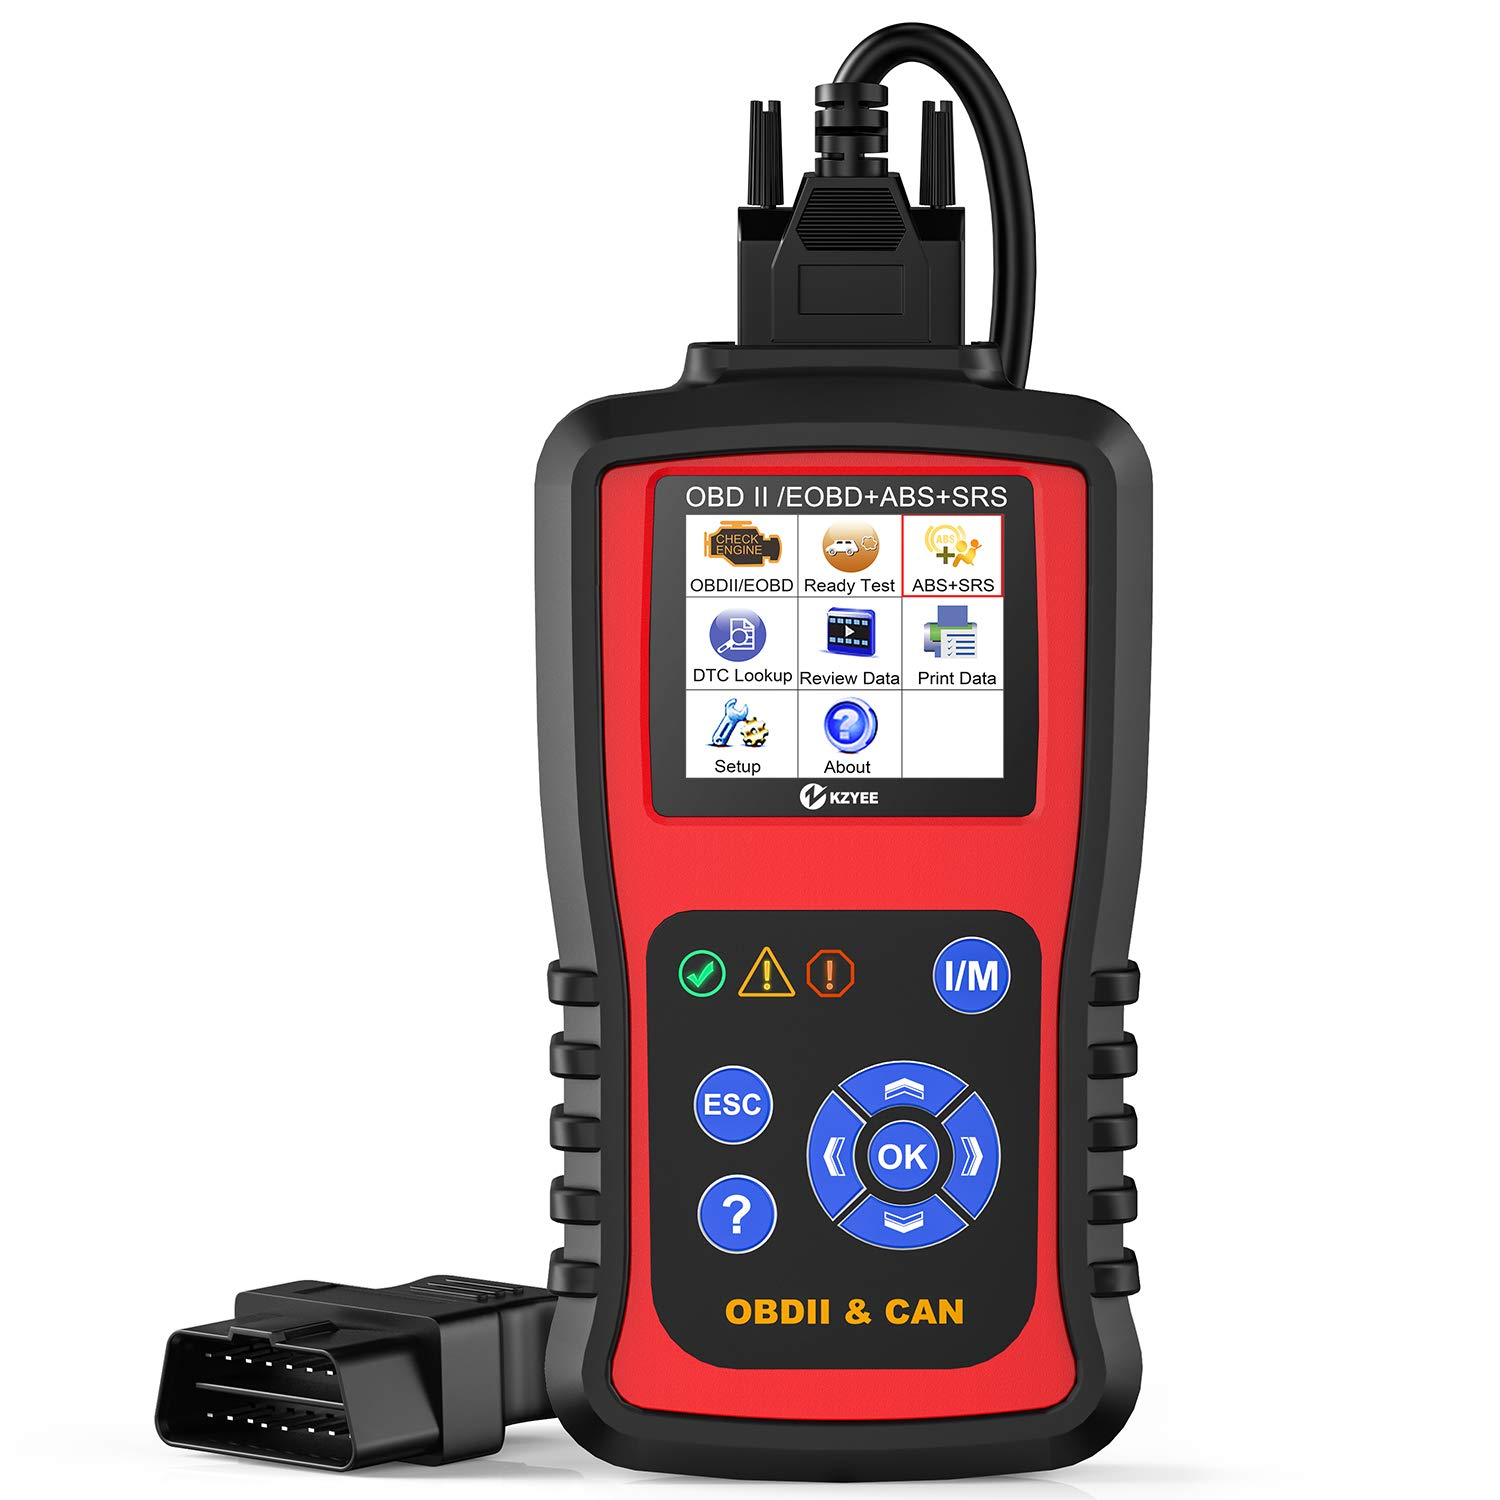 Kzyee KC501 OBD2 Code Reader ABS SRS Airbag OBDII EOBD Automotive  Diagnostic Scanner 11 Modules Check Trouble Codes for Diesel or Gasoline  Engine Vehicles Especially Most SUV Cars: Amazon.in: Car & Motorbike